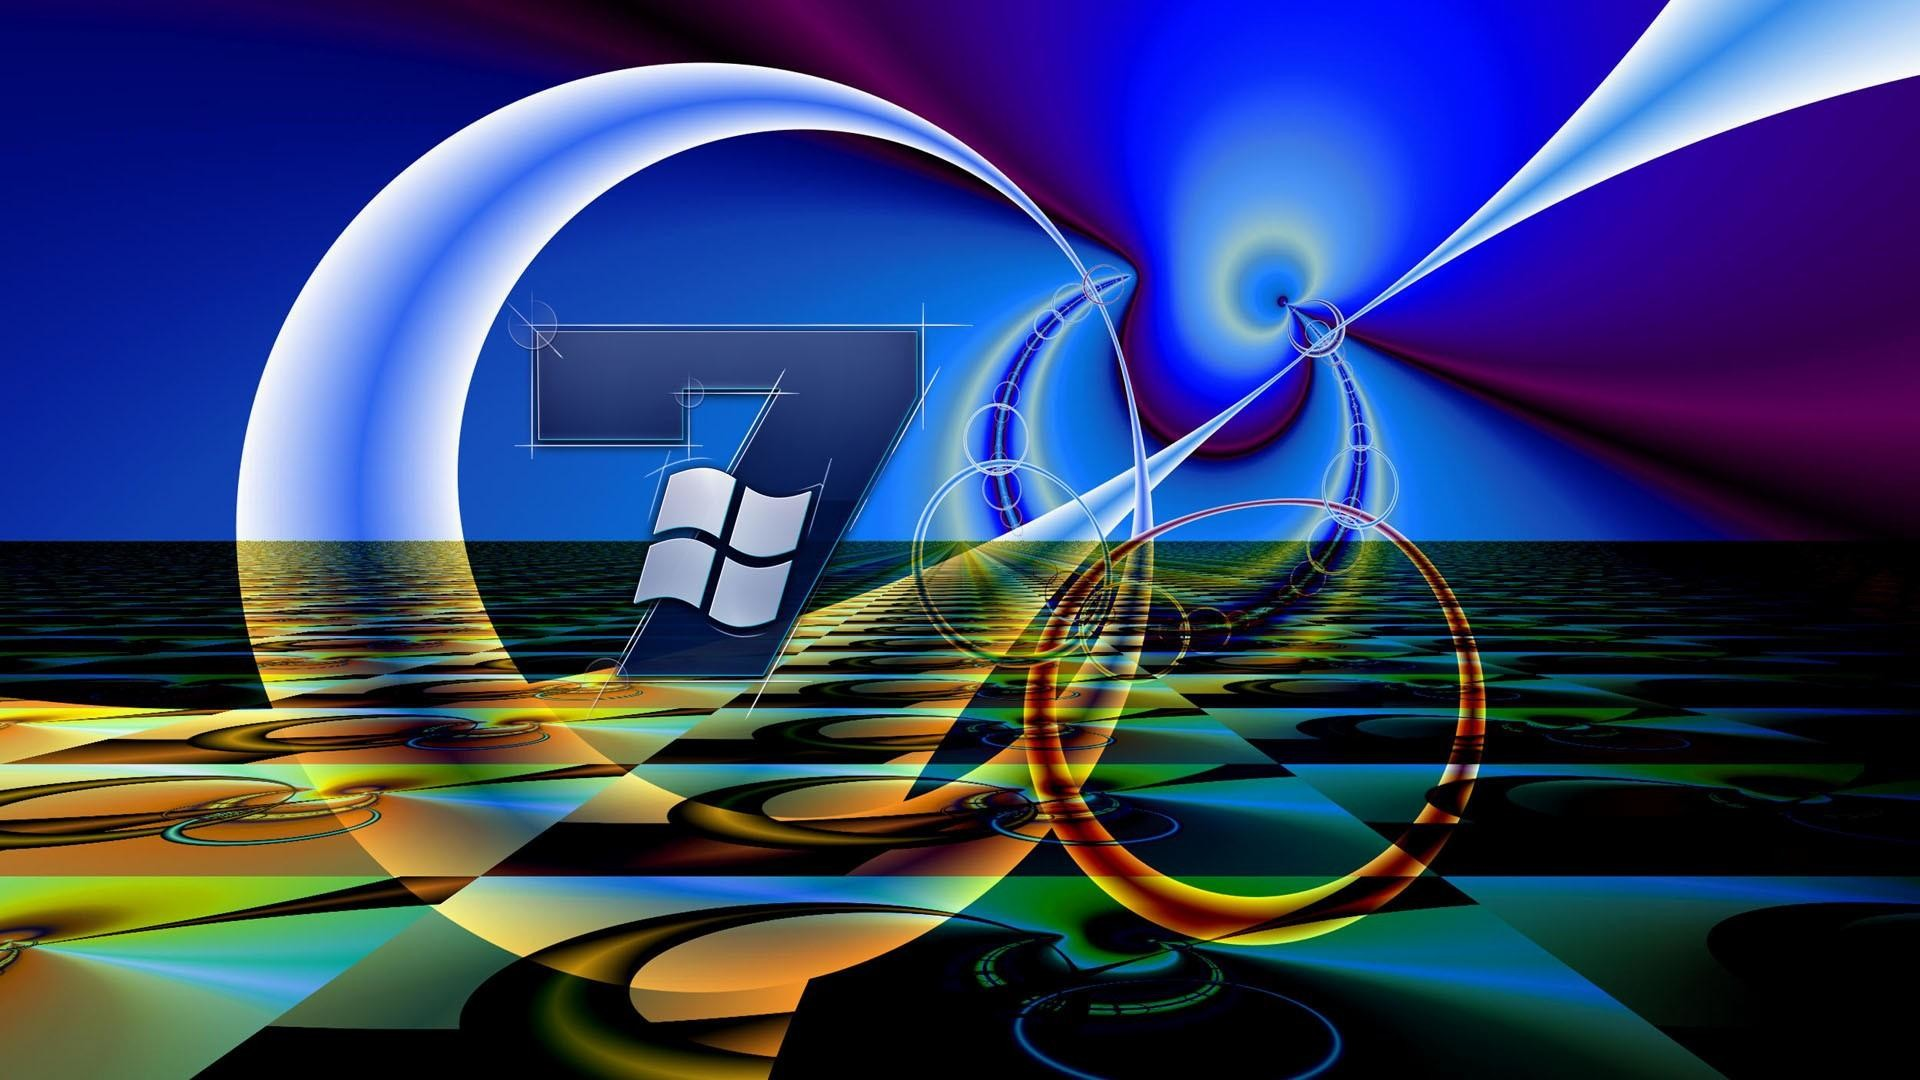 windows 7 wallpapers (83+ background pictures)